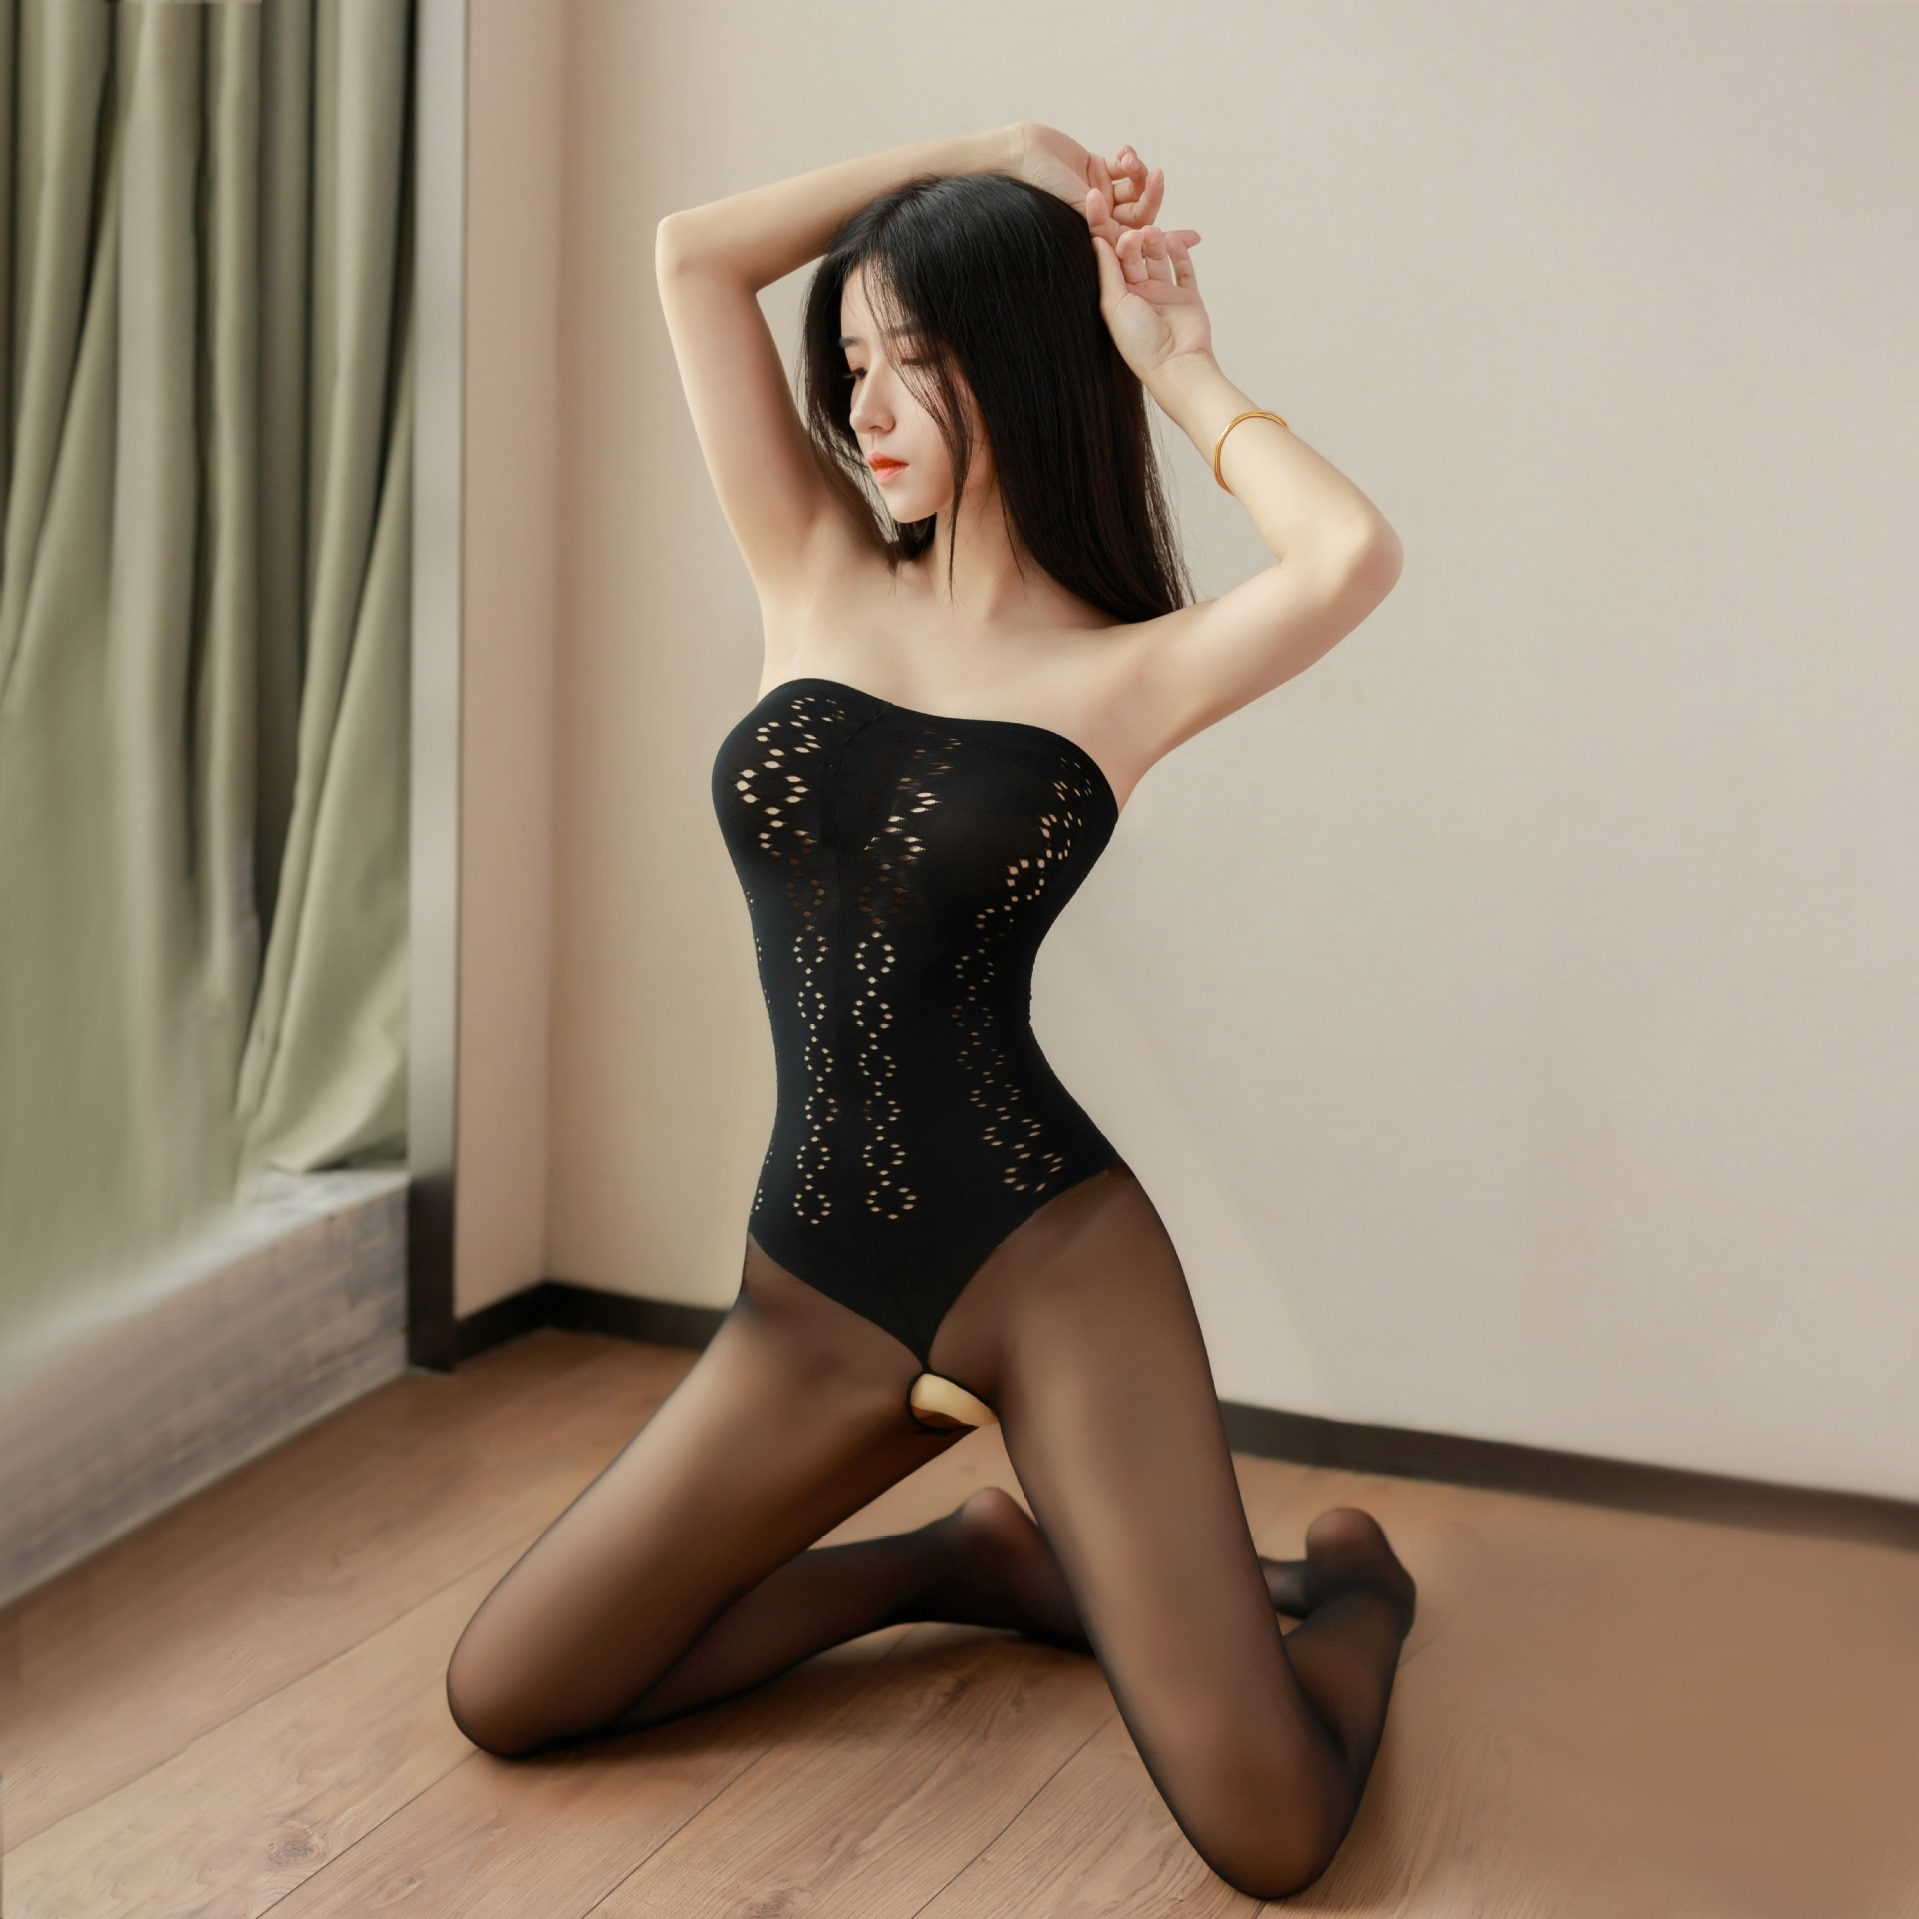 Mesh Novelty & Special Use Sexy Clothing Sexy Underwear Exotic Apparel Jumpsuit Full Body Stockings